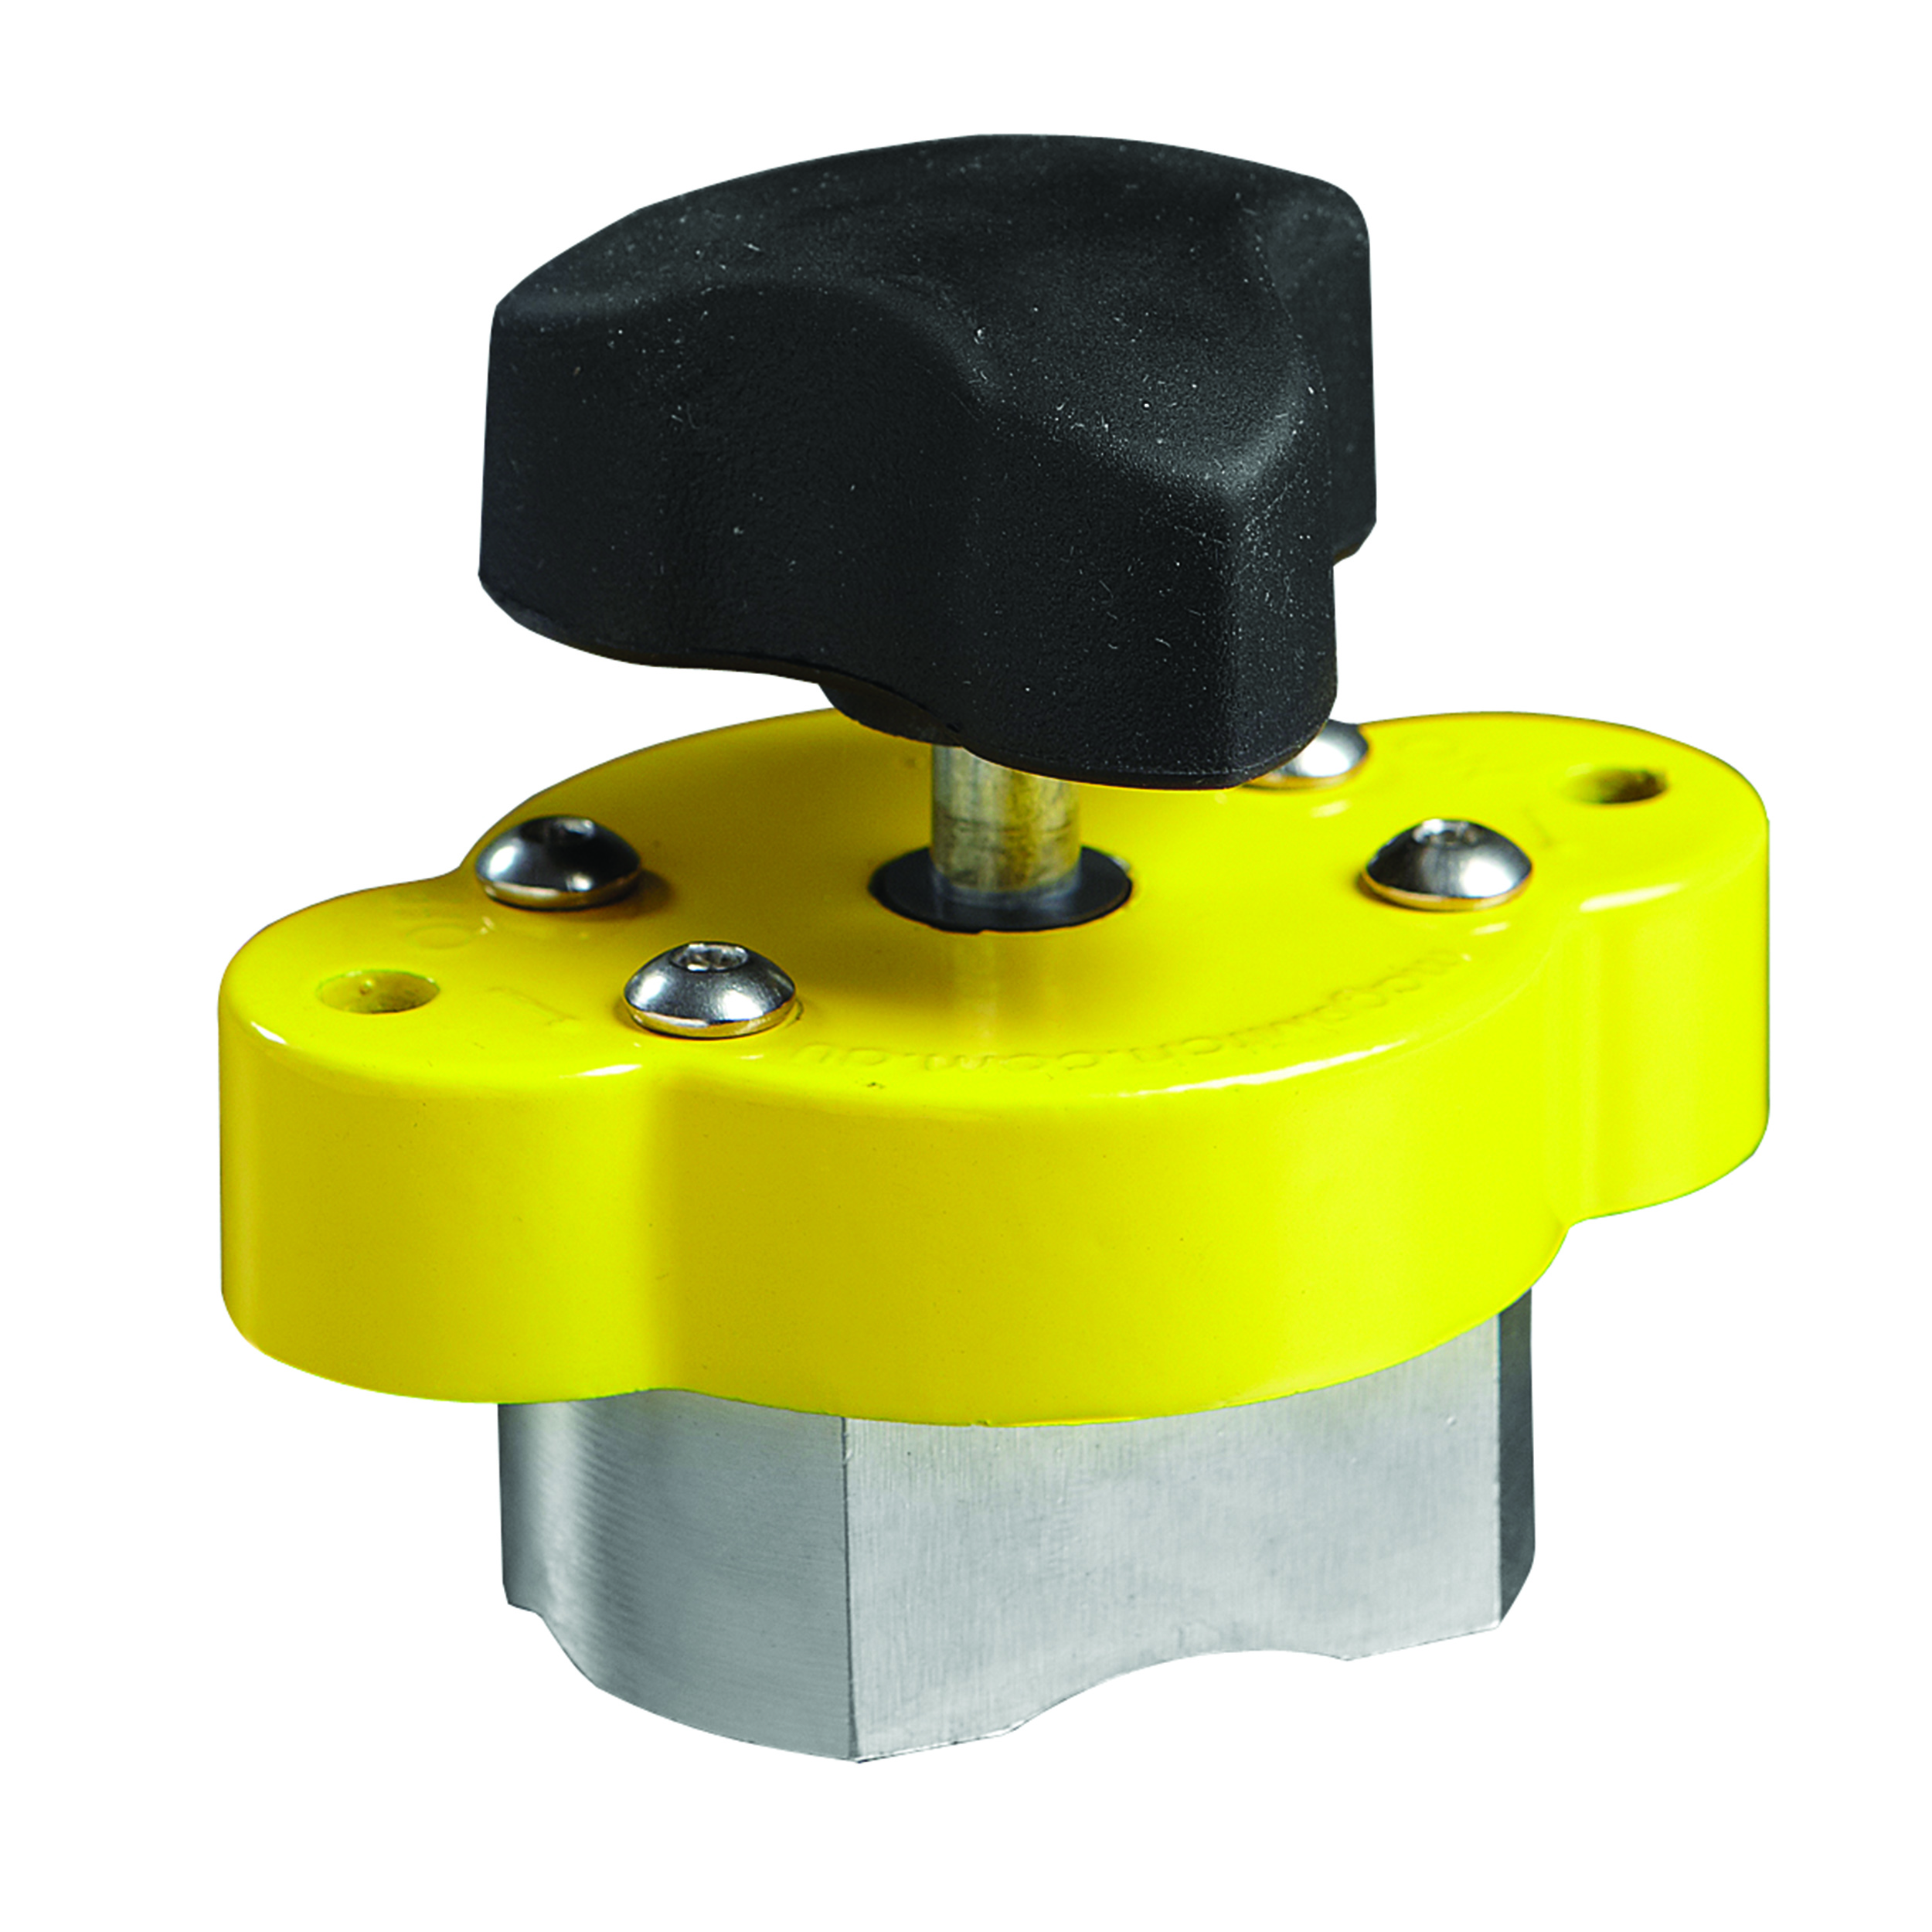 MagJig 235 Switchable Magnet For Jigs and Fixtures